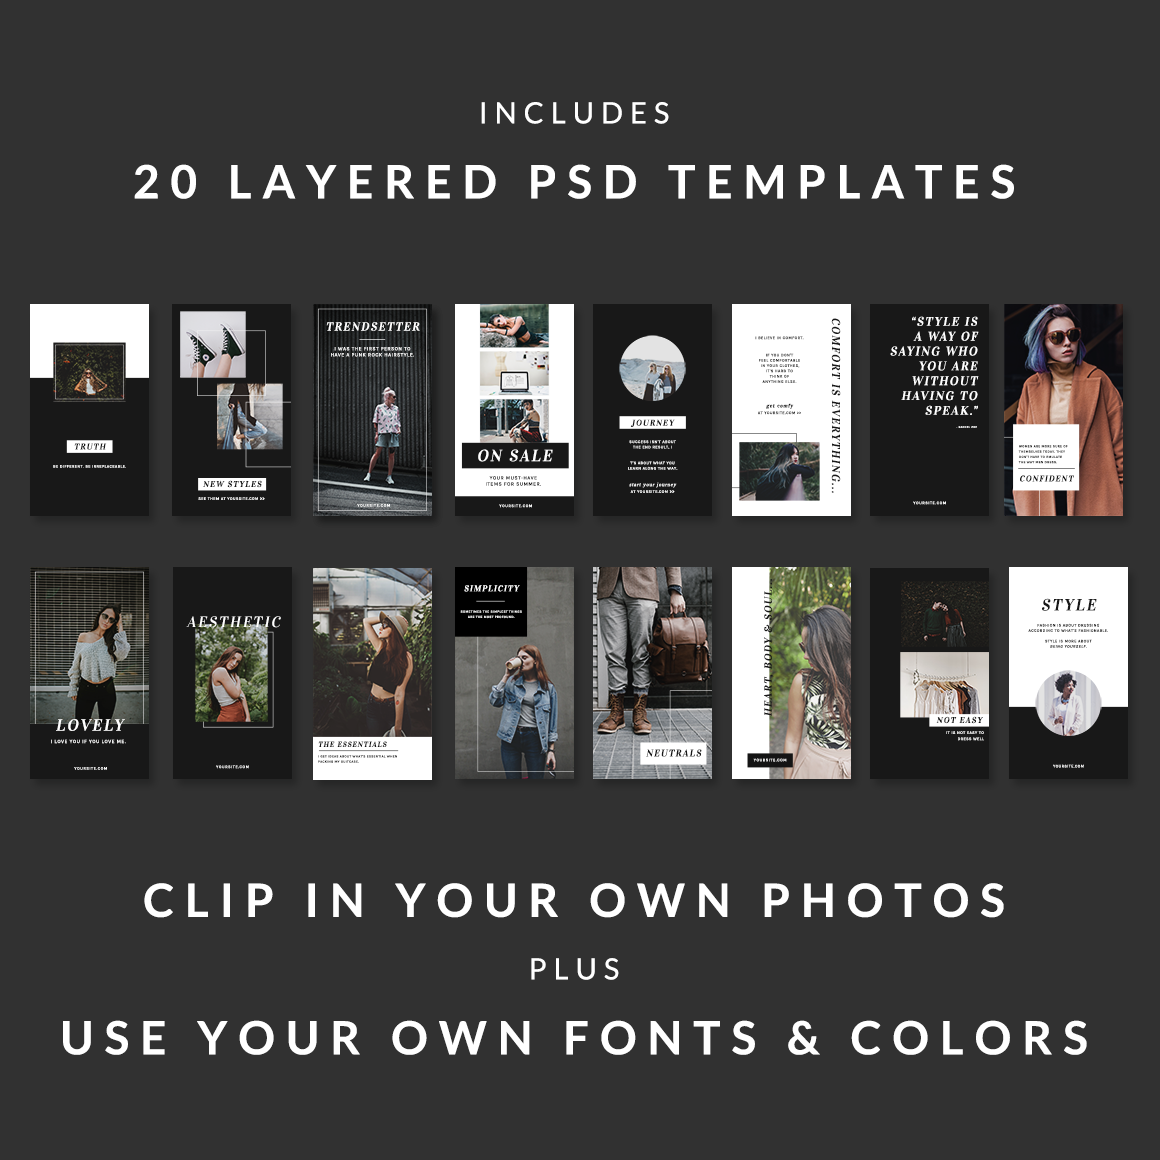 20 Chic & Stylish Templates